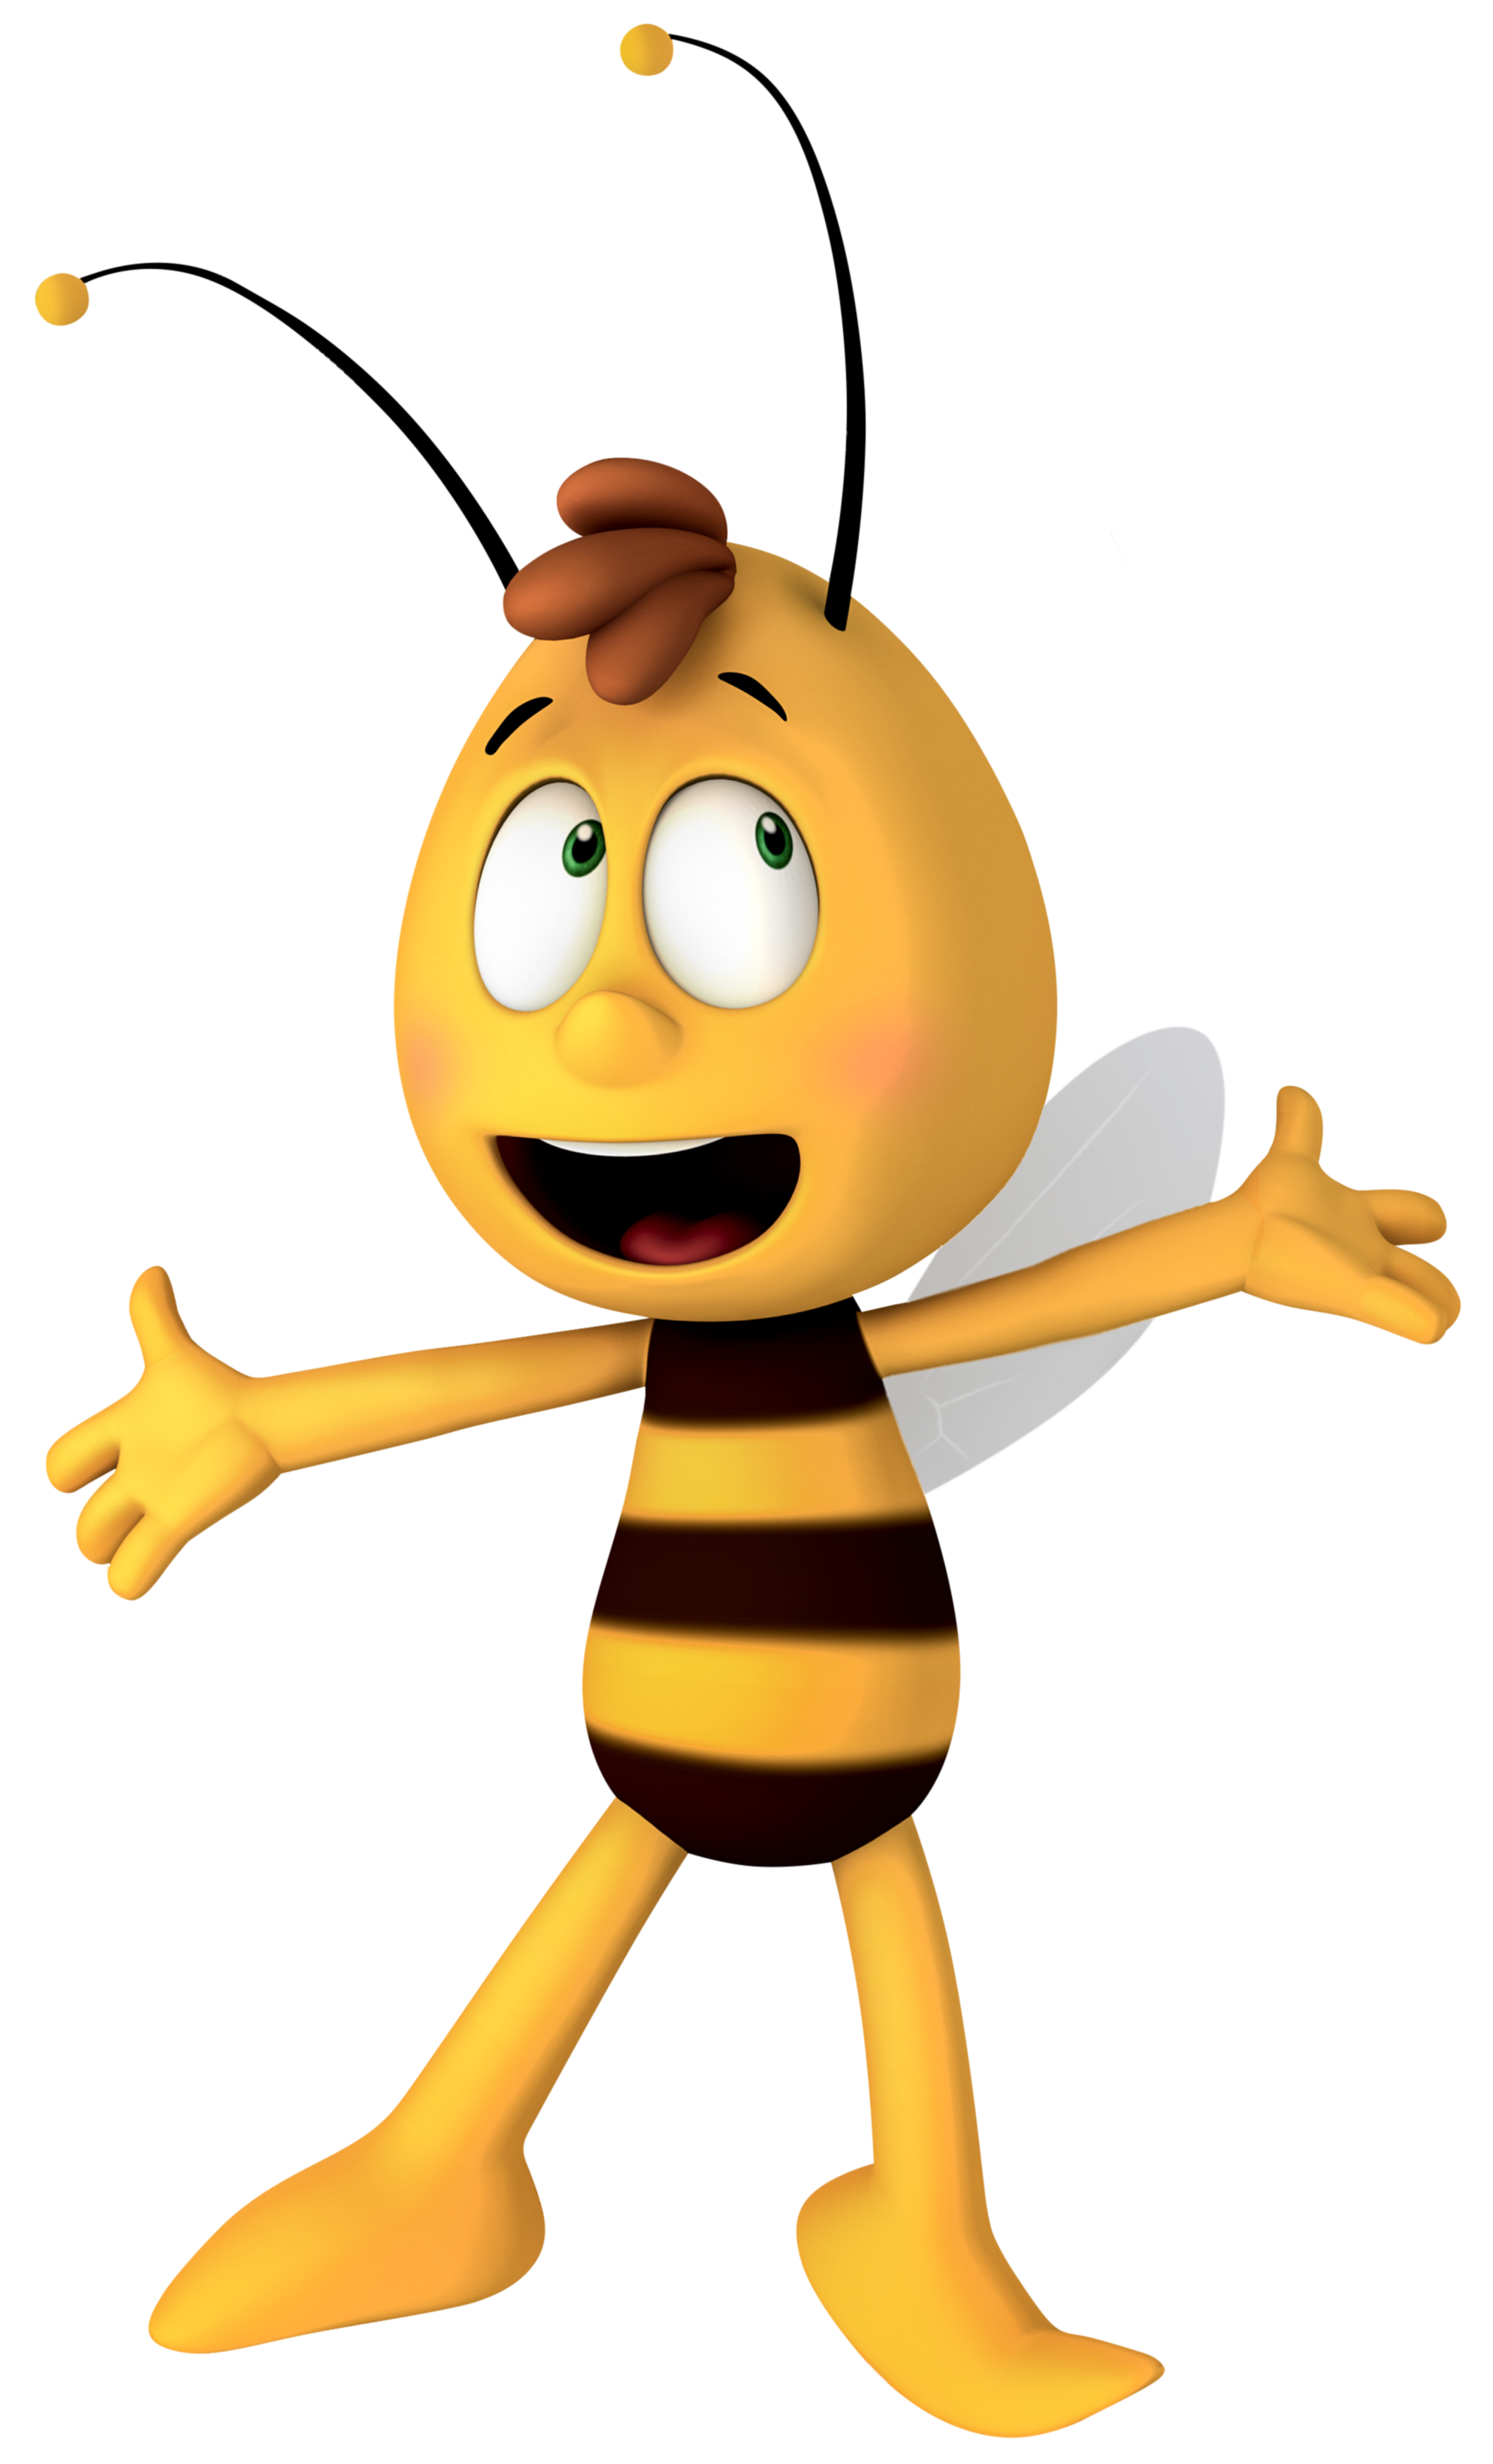 Bees transparent easy cartoon. Willy maya the bee